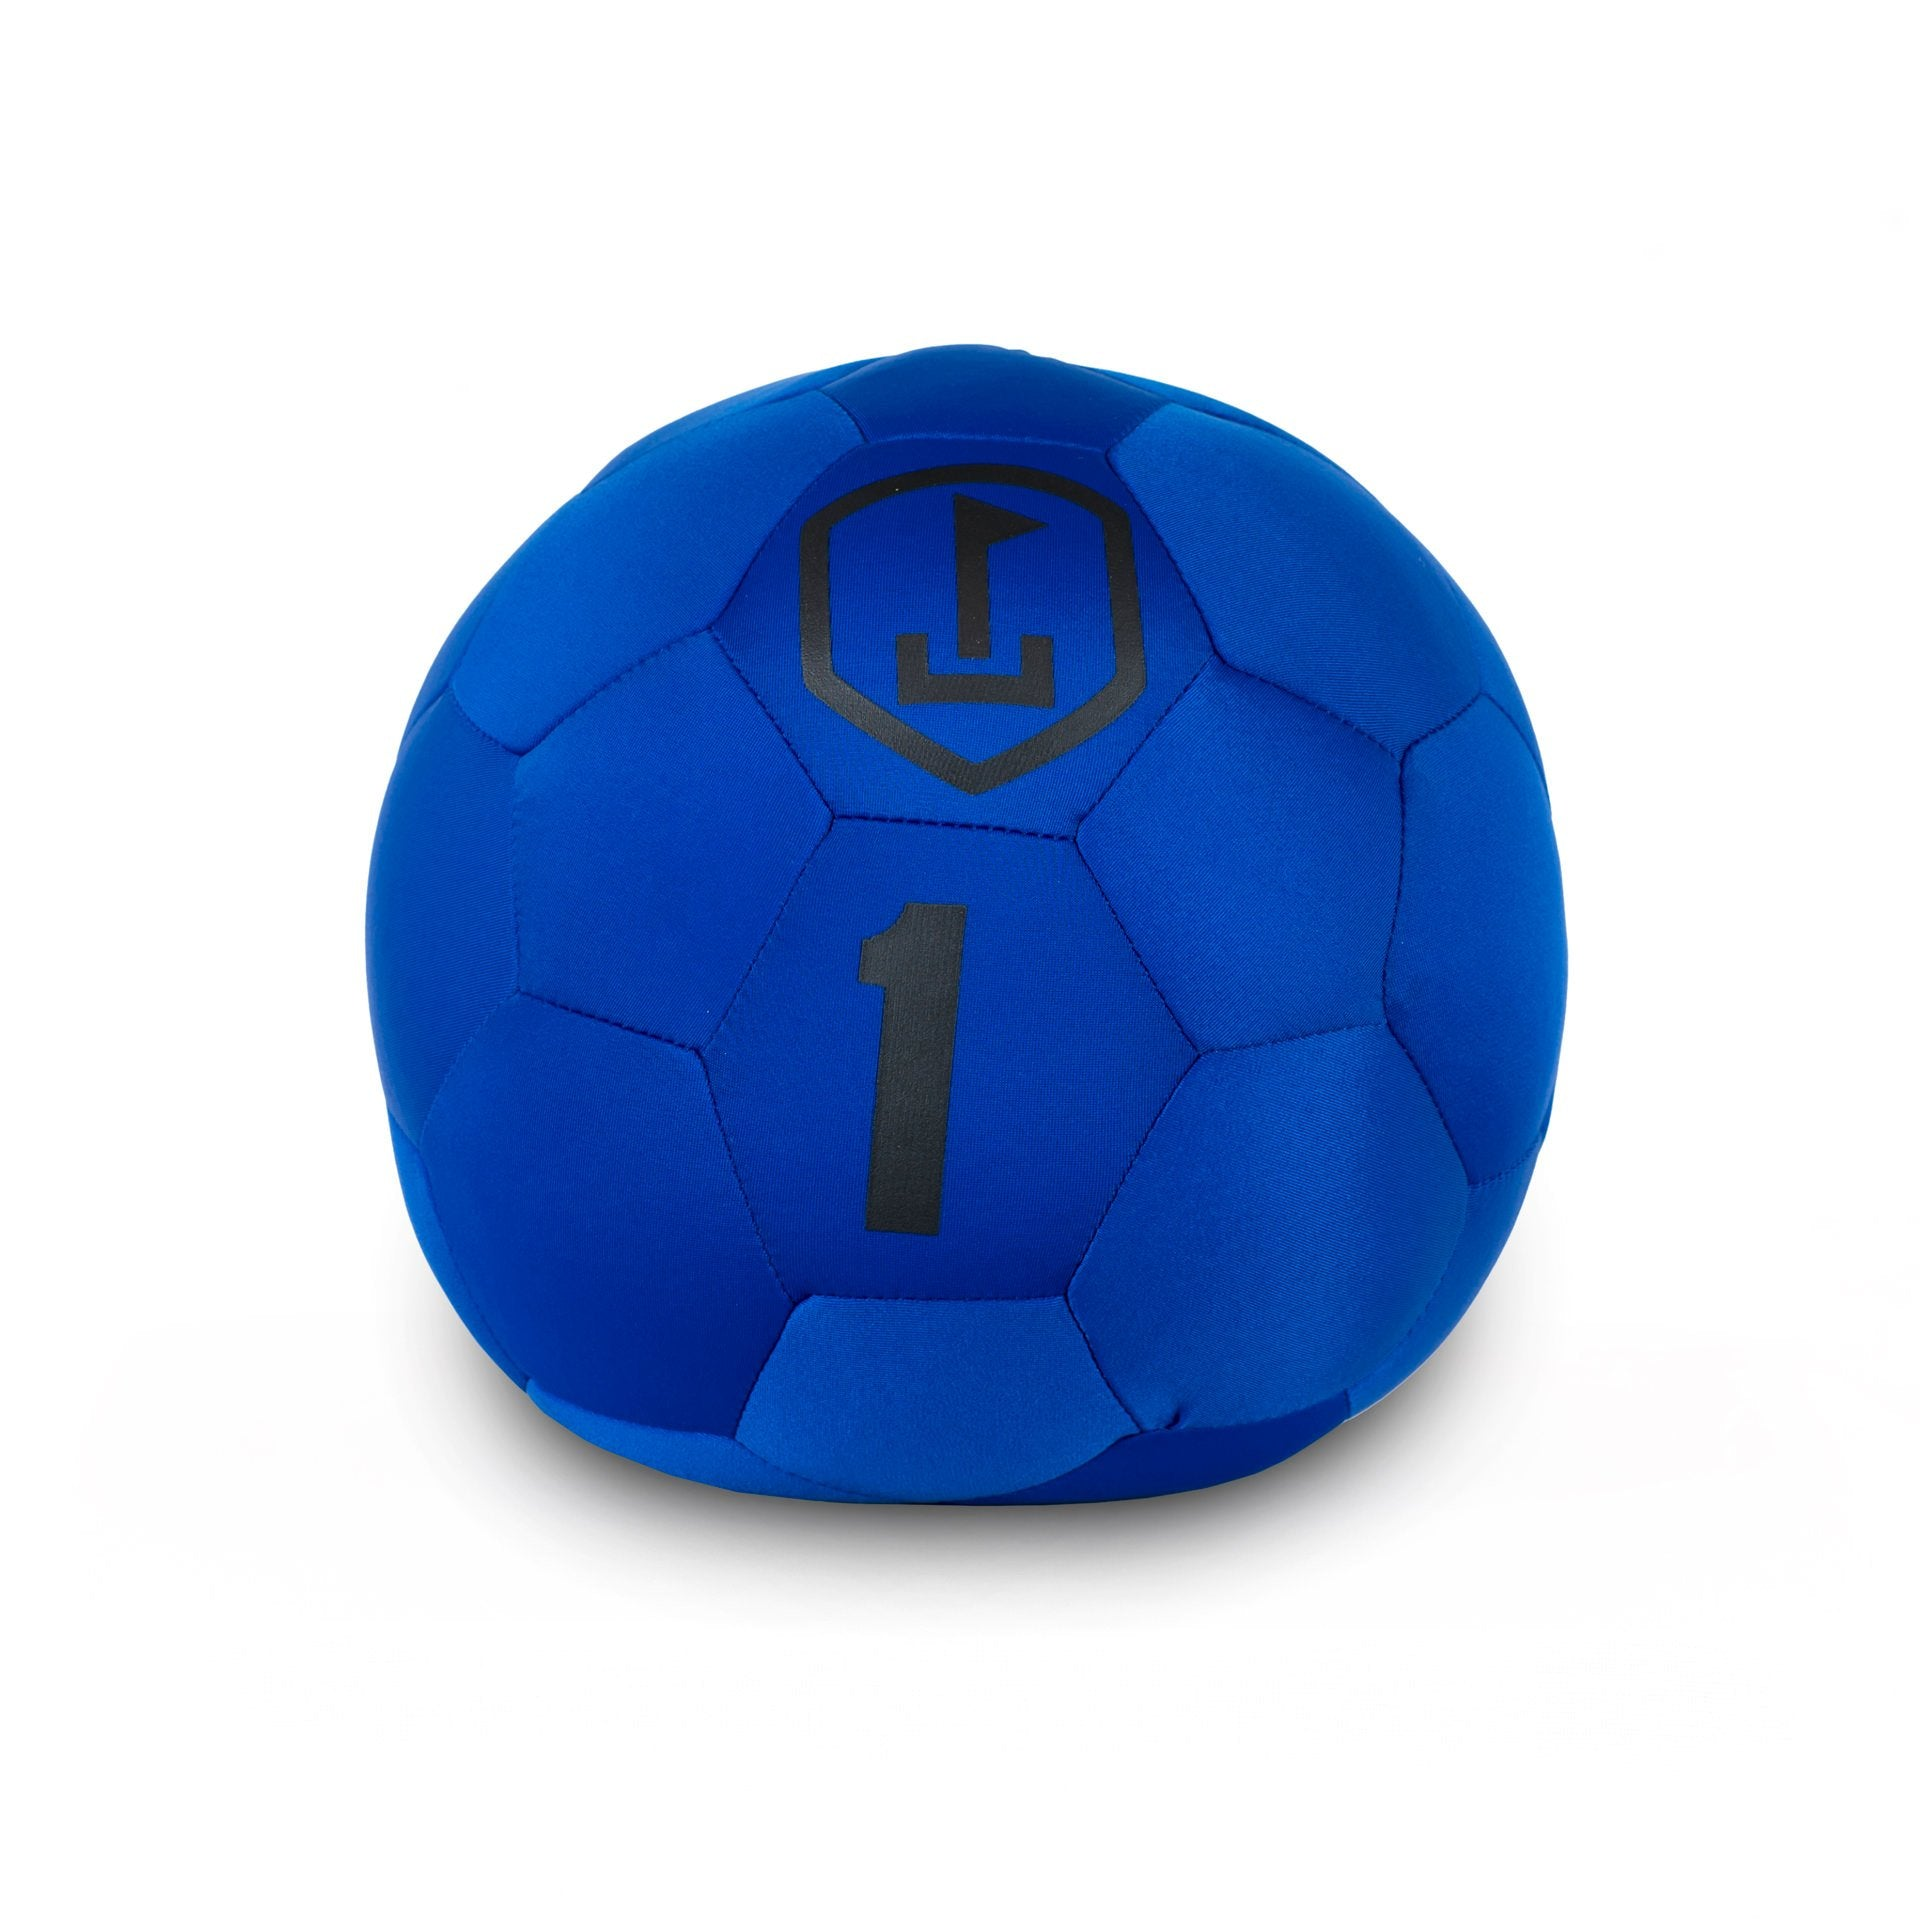 Blue & Black ball - FREE SHIPPING